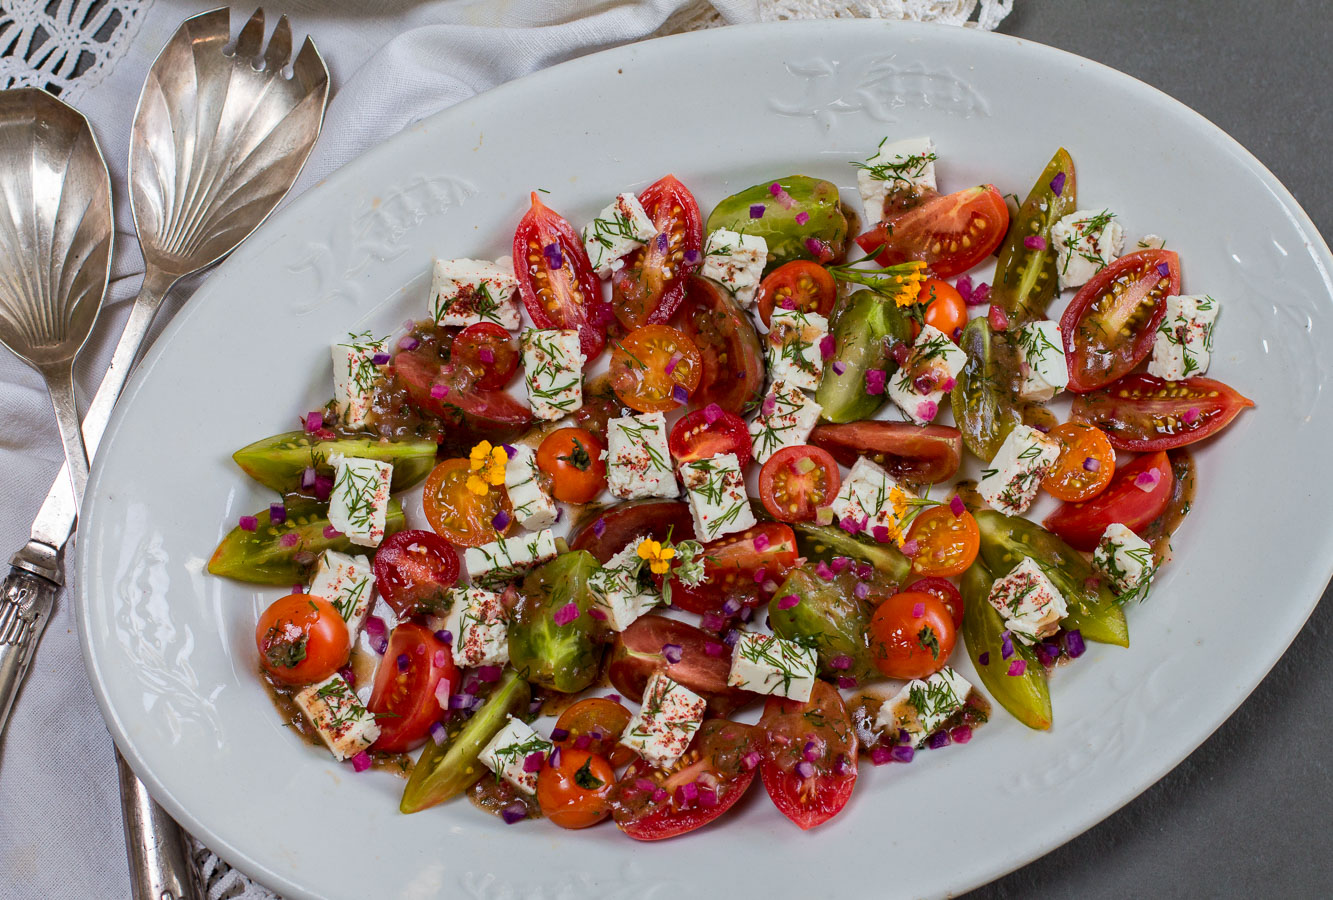 Heirloom Tomatoes ~ Bite-Sized, Team up with Creamy French Feta Cubes with a Zesty Vinaigrette for a Simple Summer Salad